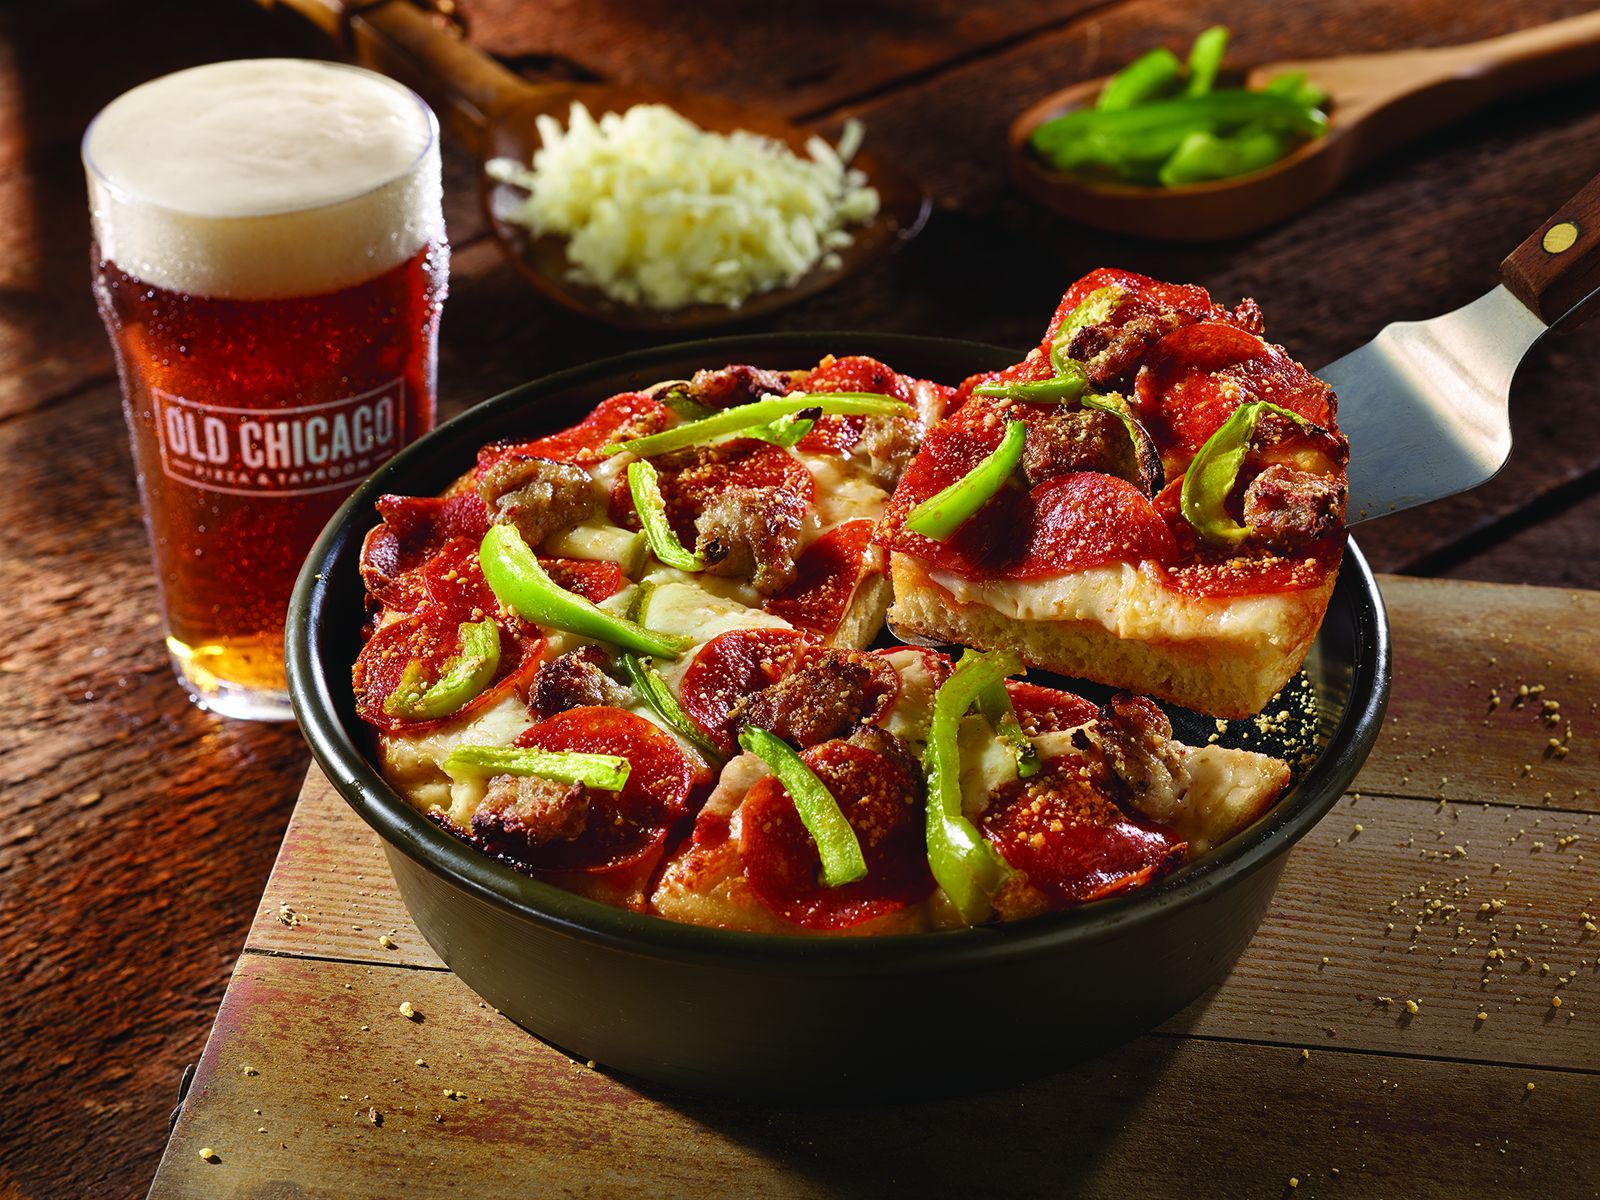 Old Chicago Pizza & Taproom Opening in Hamilton Place - Chattanooga, TN